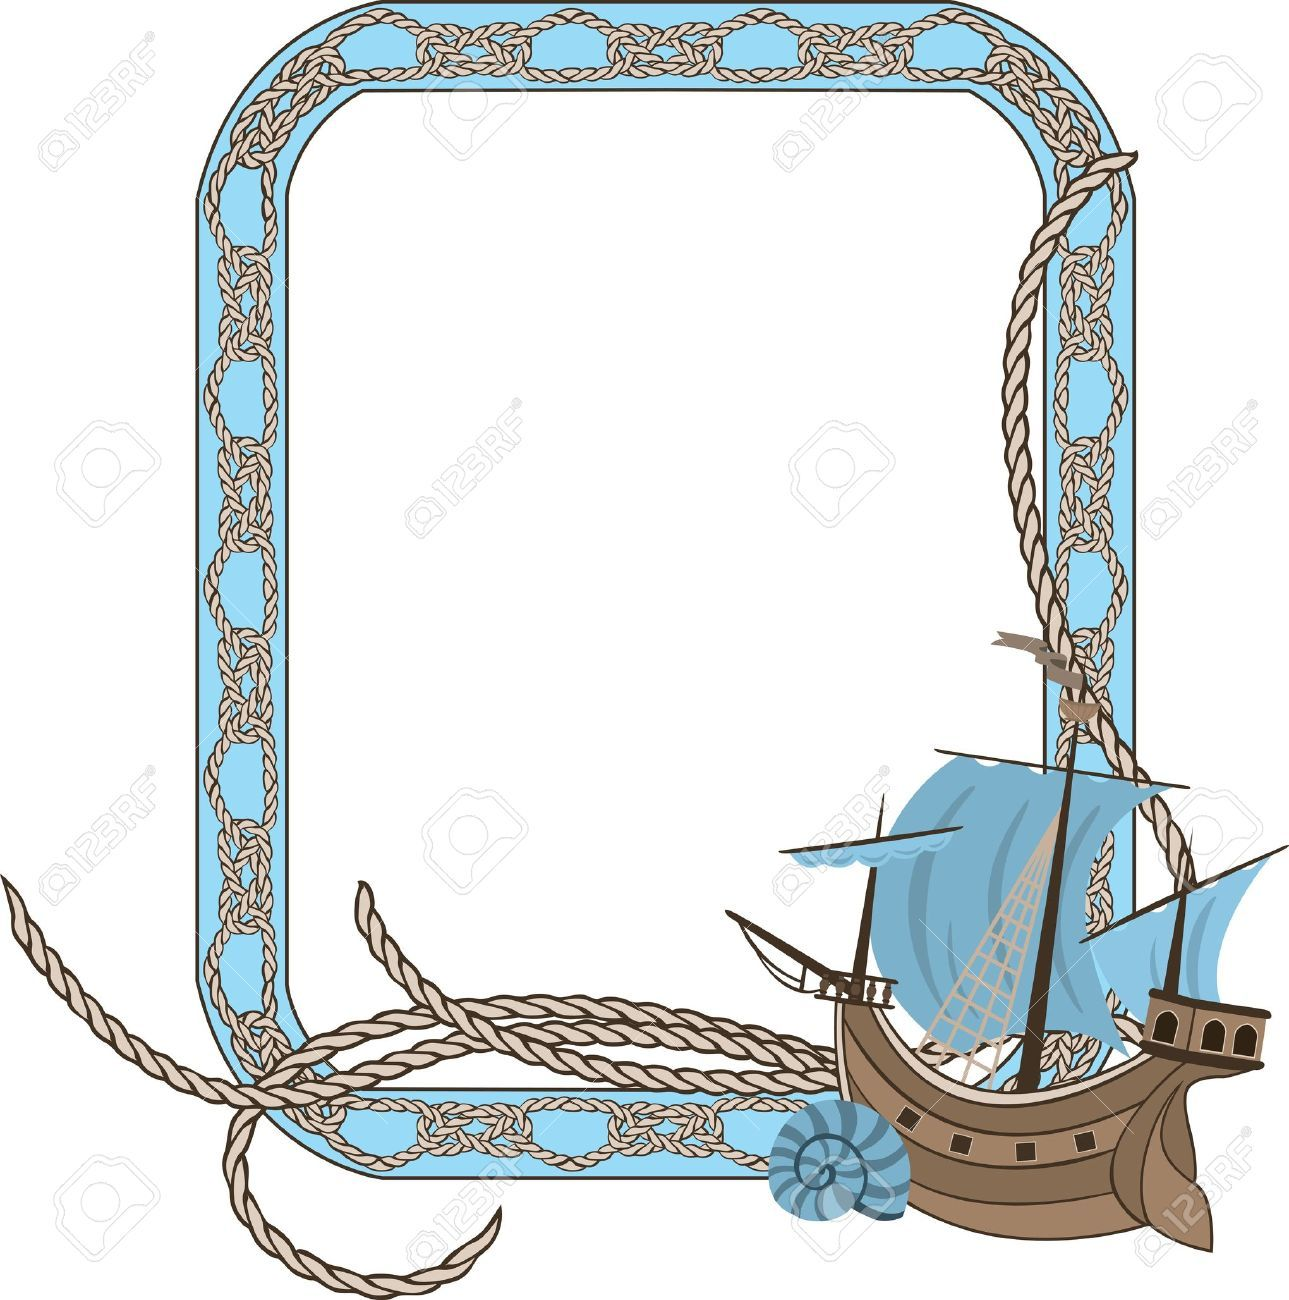 Boats clipart border. Nautical shell sea frame